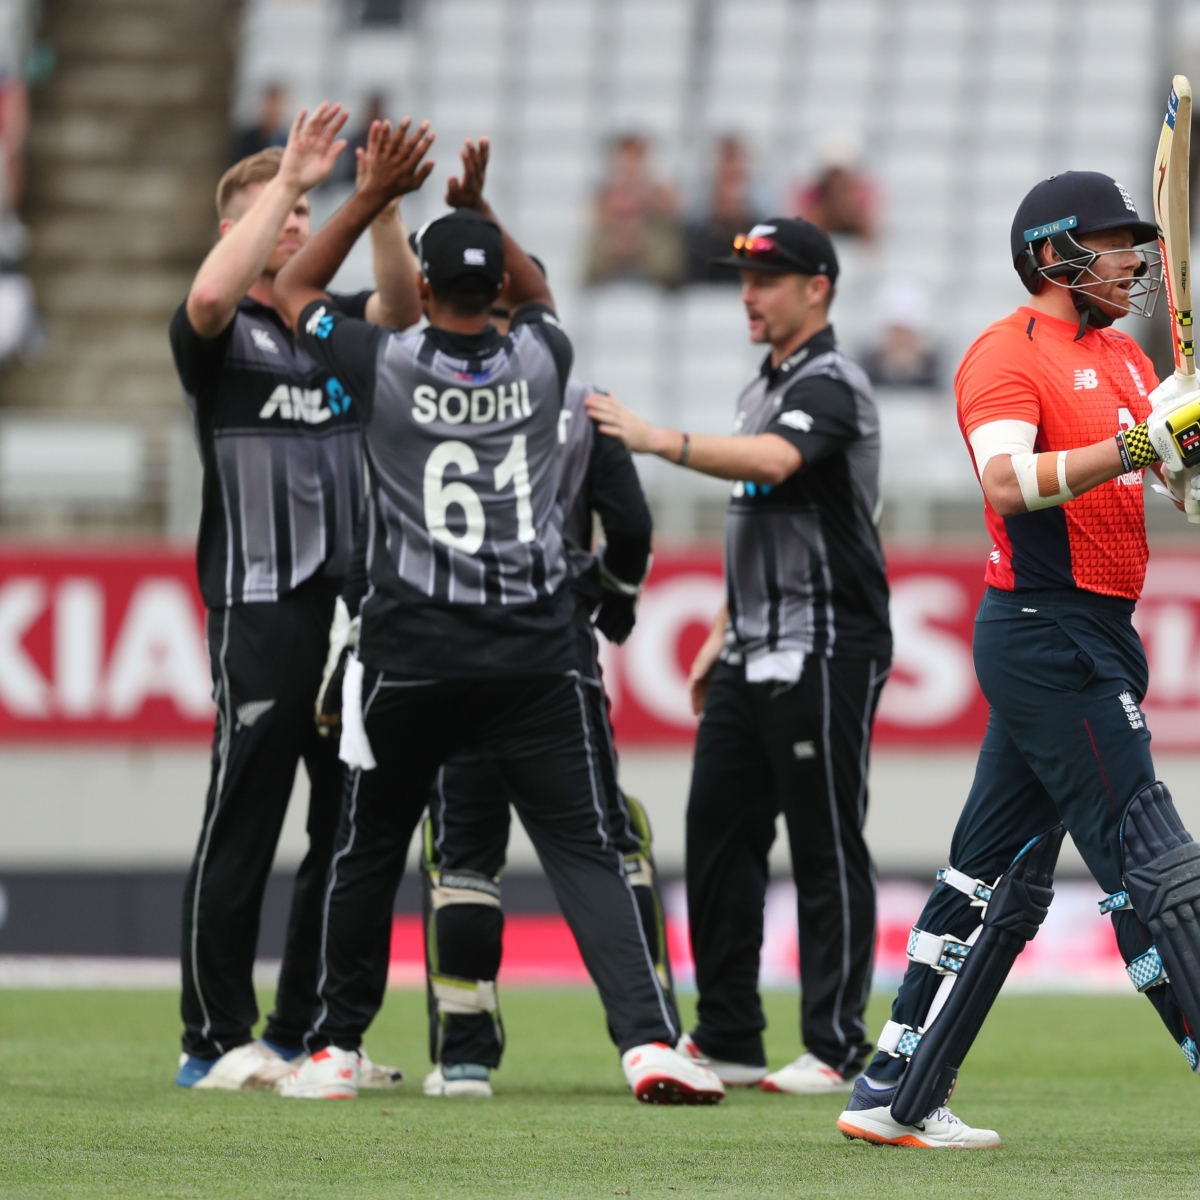 Neesham cries for 'divine help' after another super over loss